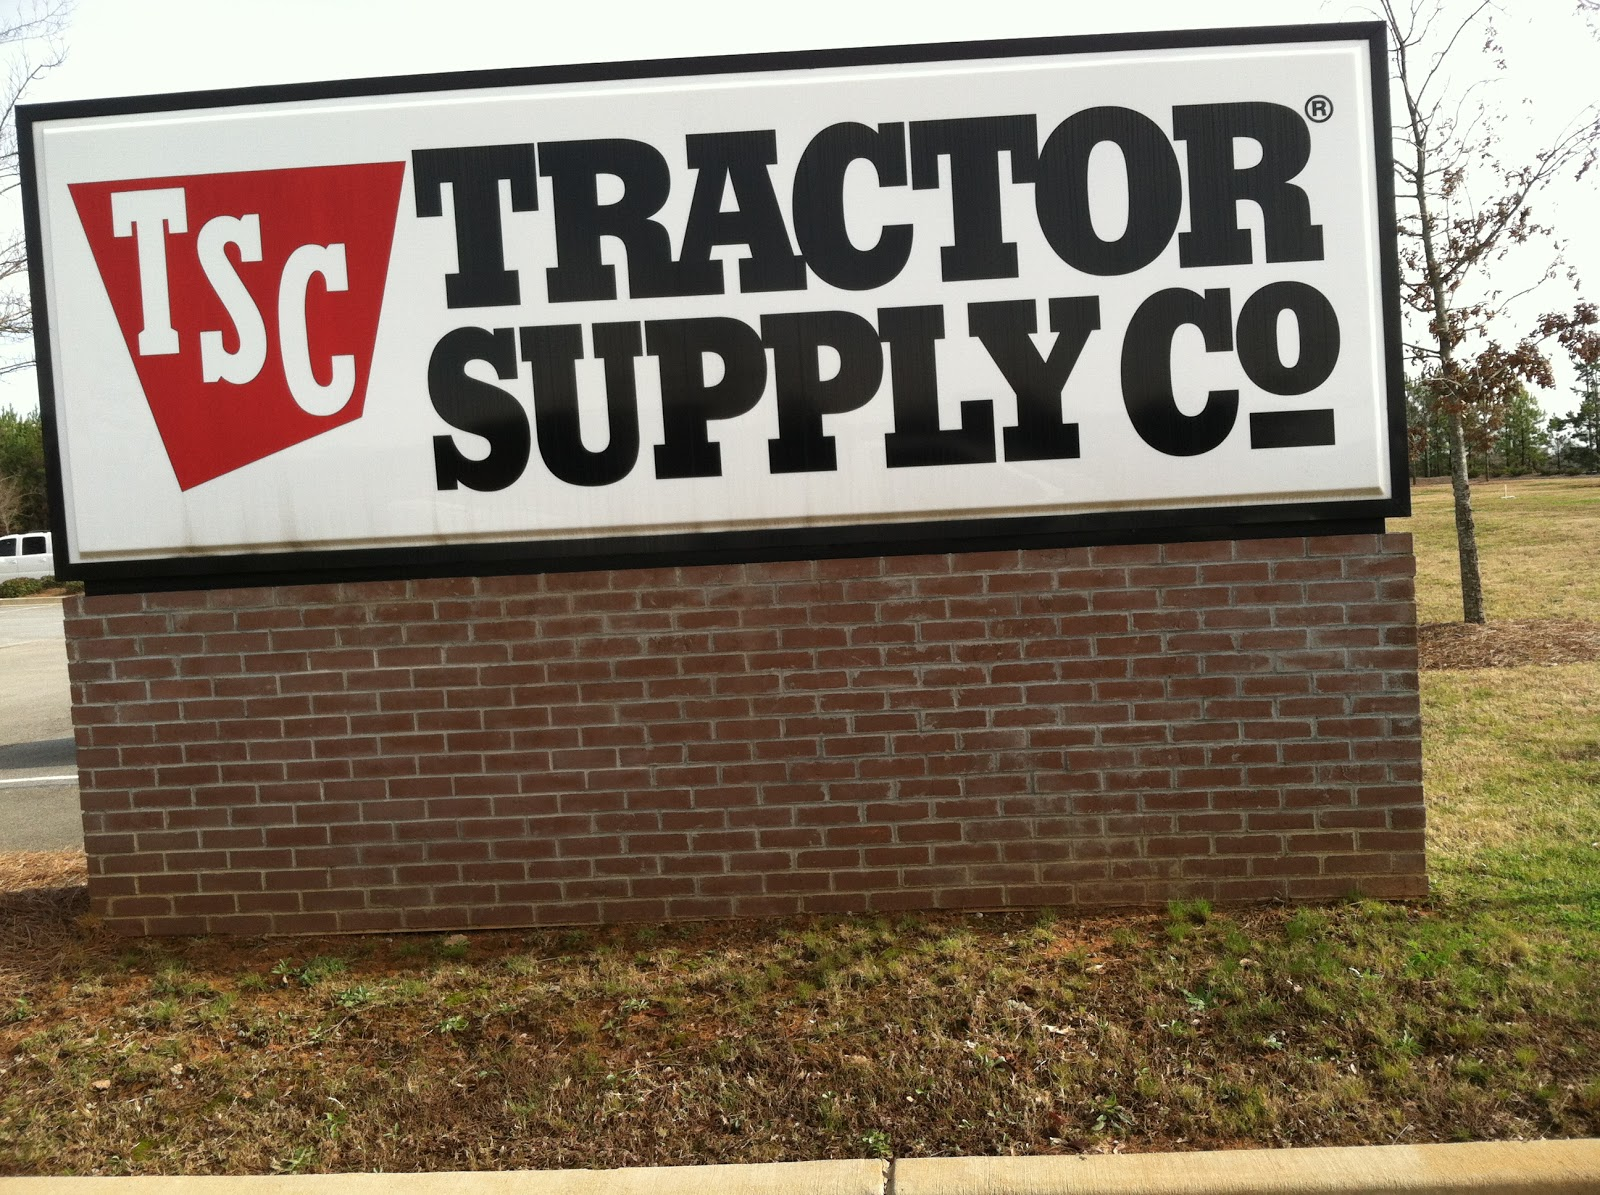 Tsc Tractor Supply Catalog : Two sisters gardening my favorite neighborhood store